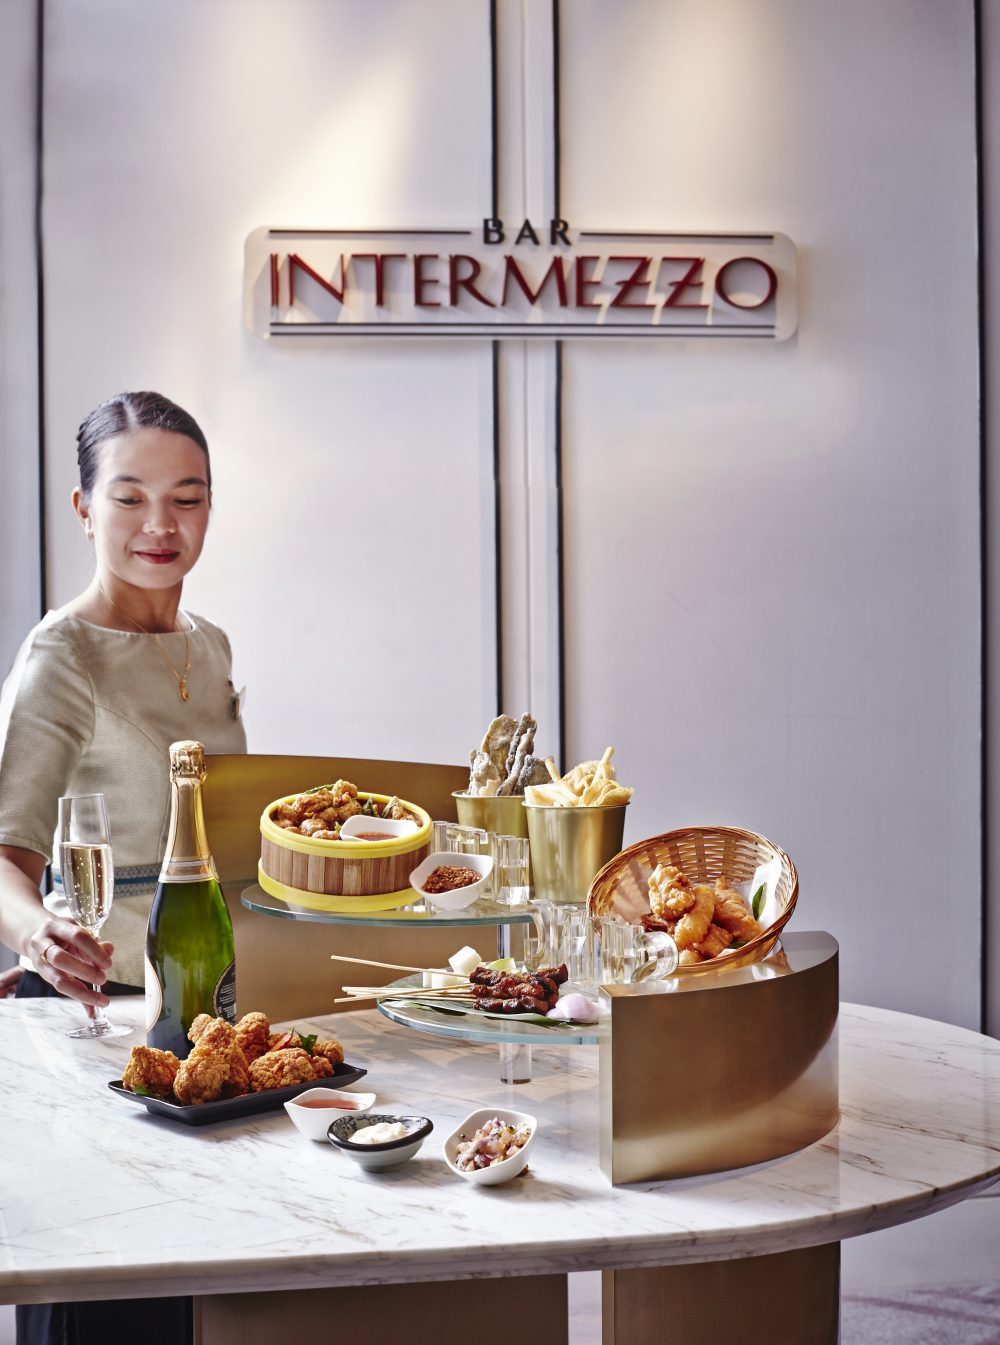 Digital Agency Case Study - Orchard Hotel Singapore - Bar Intermezzo bar bites and champagne; waitress dishing out food like fried chicken, satay and glasses